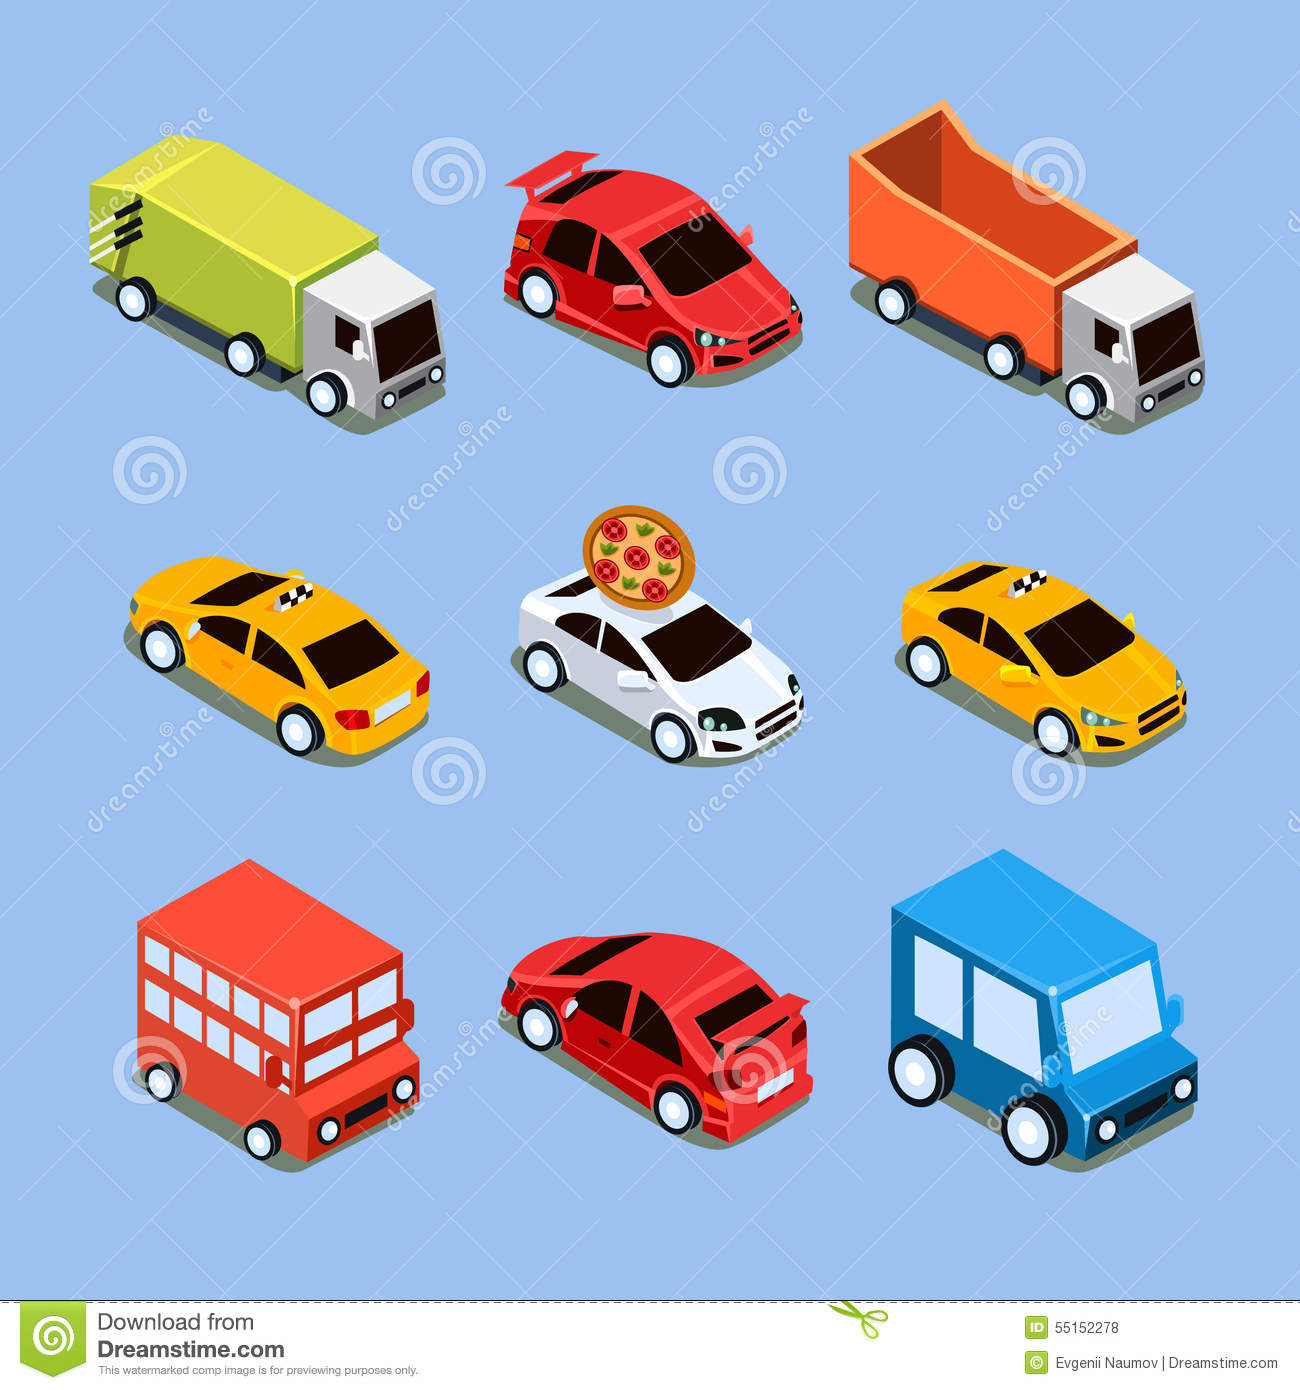 4 Wheel Bicycle Car >> Flat 3d Isometric High Quality City Transport Stock Vector - Image: 55152278